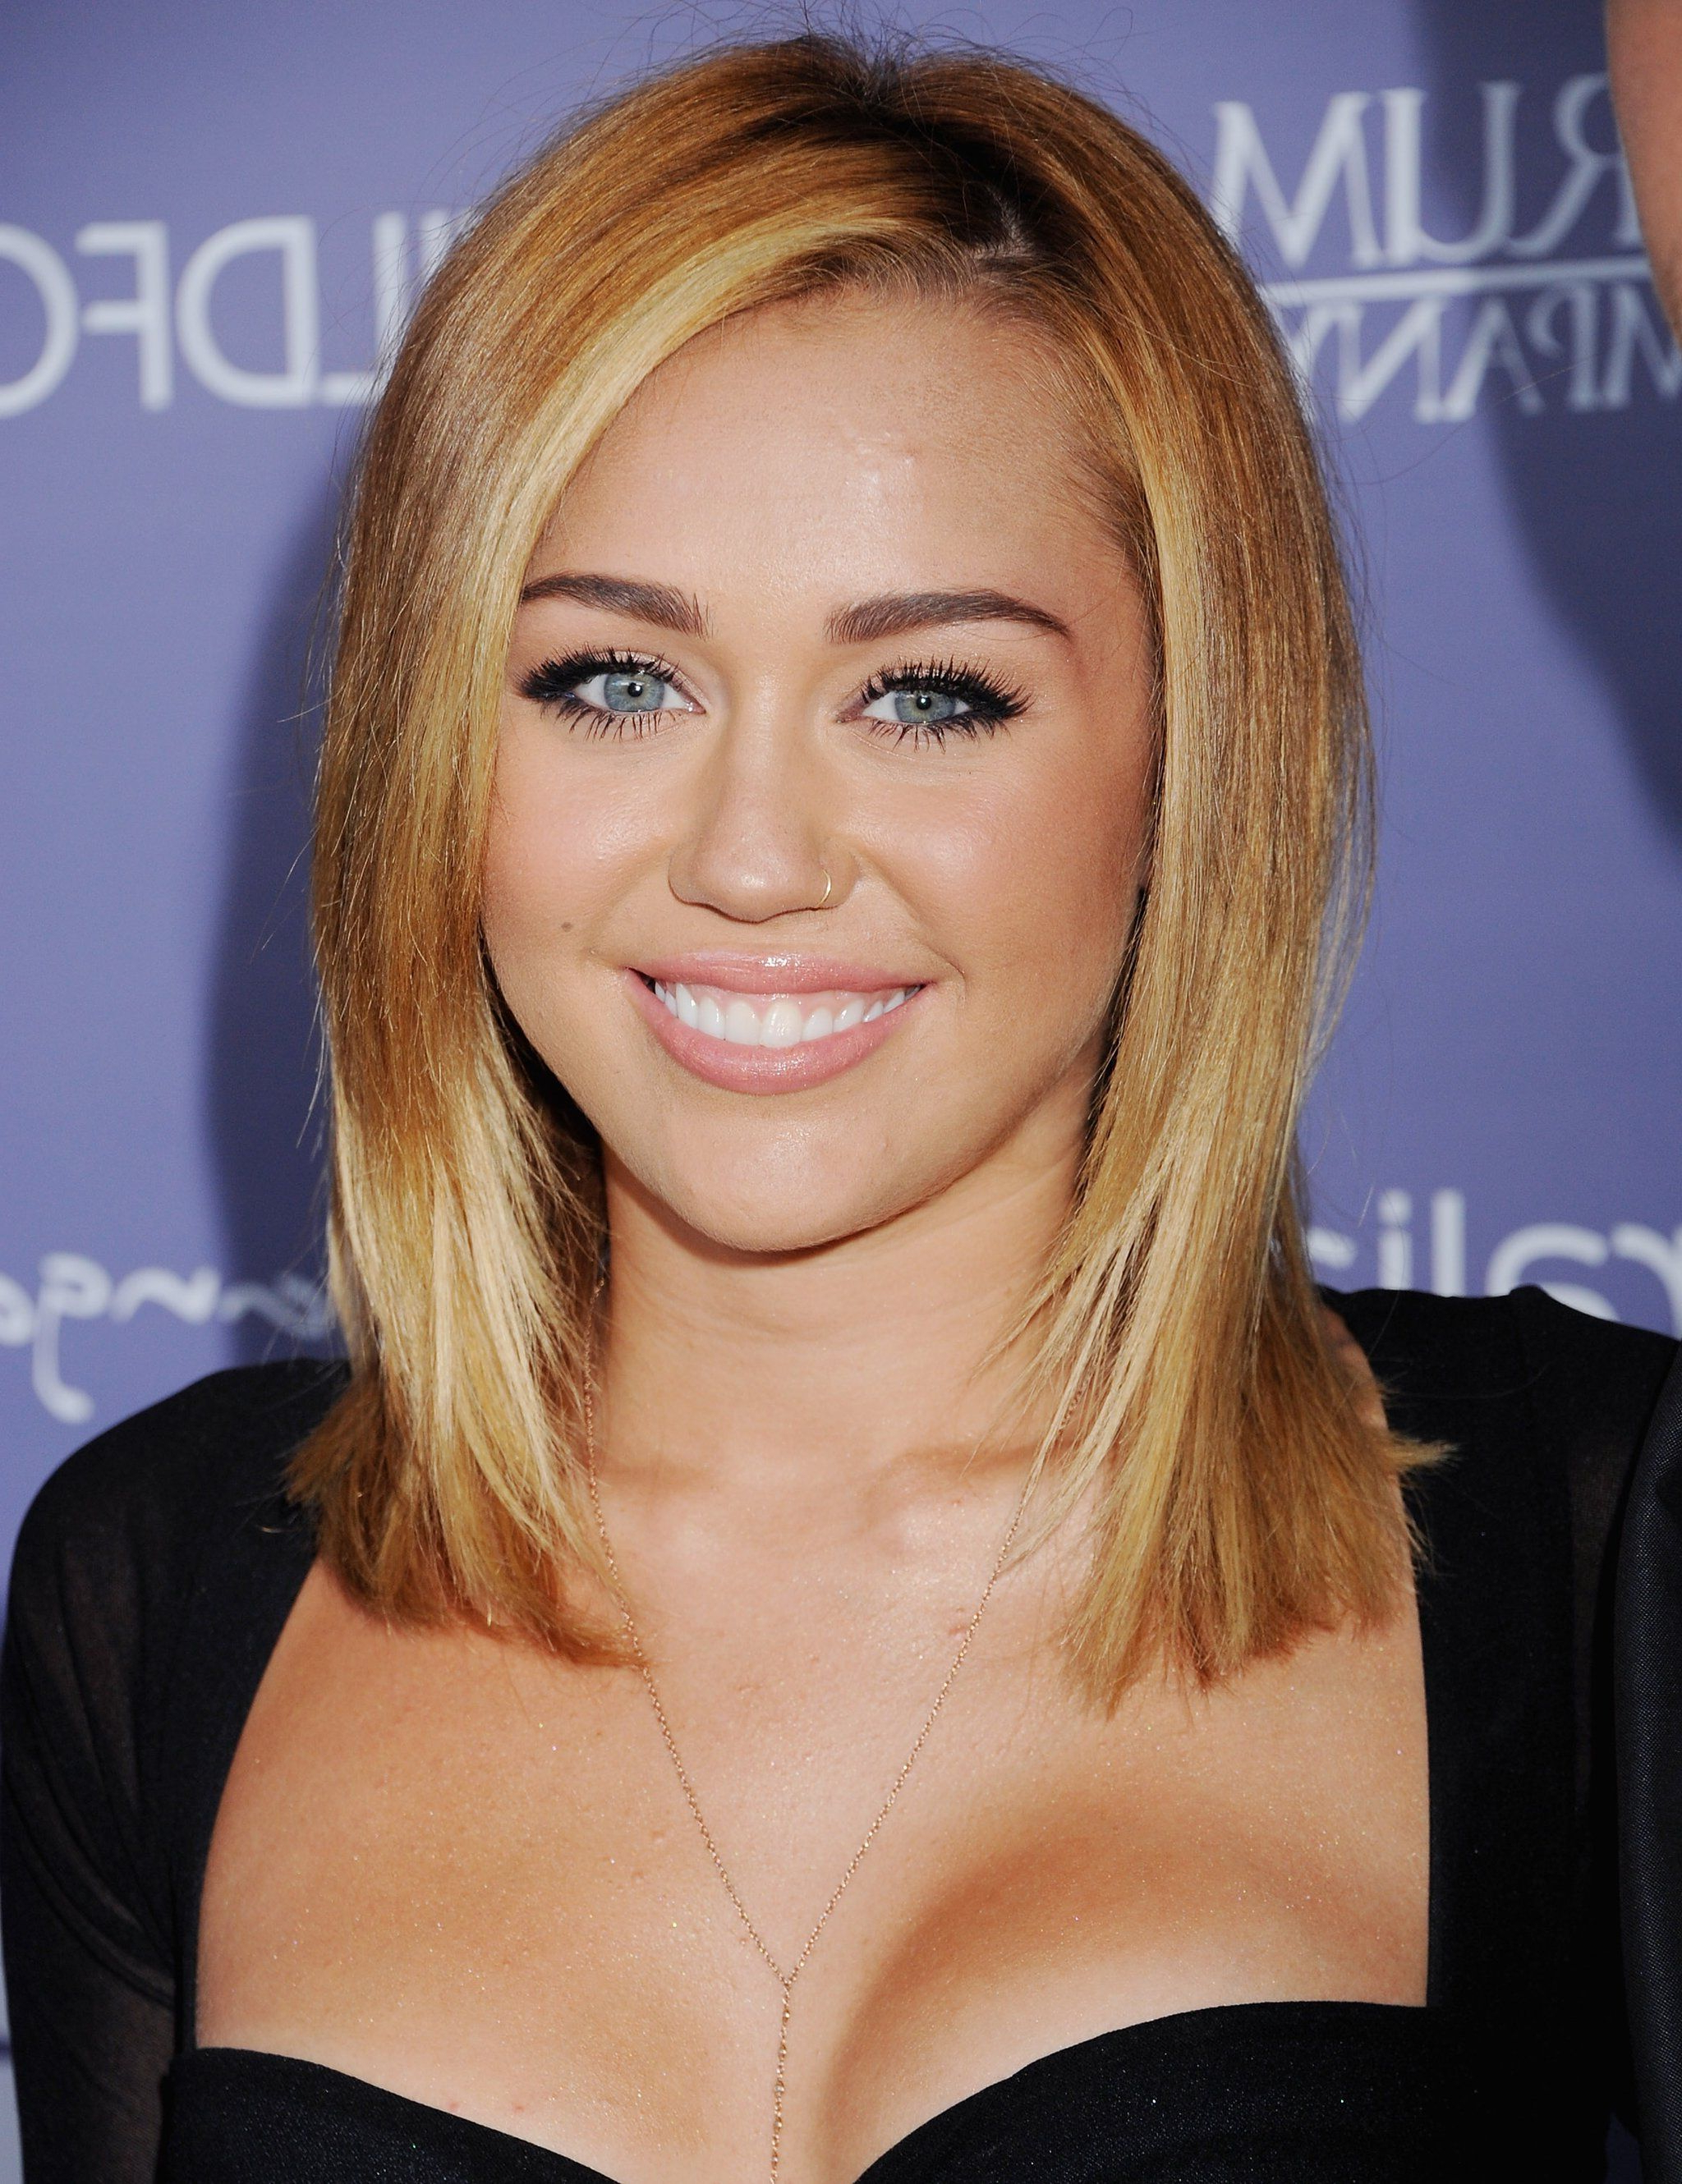 Hair, Hair Styles And Hair Cuts Inside Recent Medium Haircuts Like Miley Cyrus (View 18 of 20)